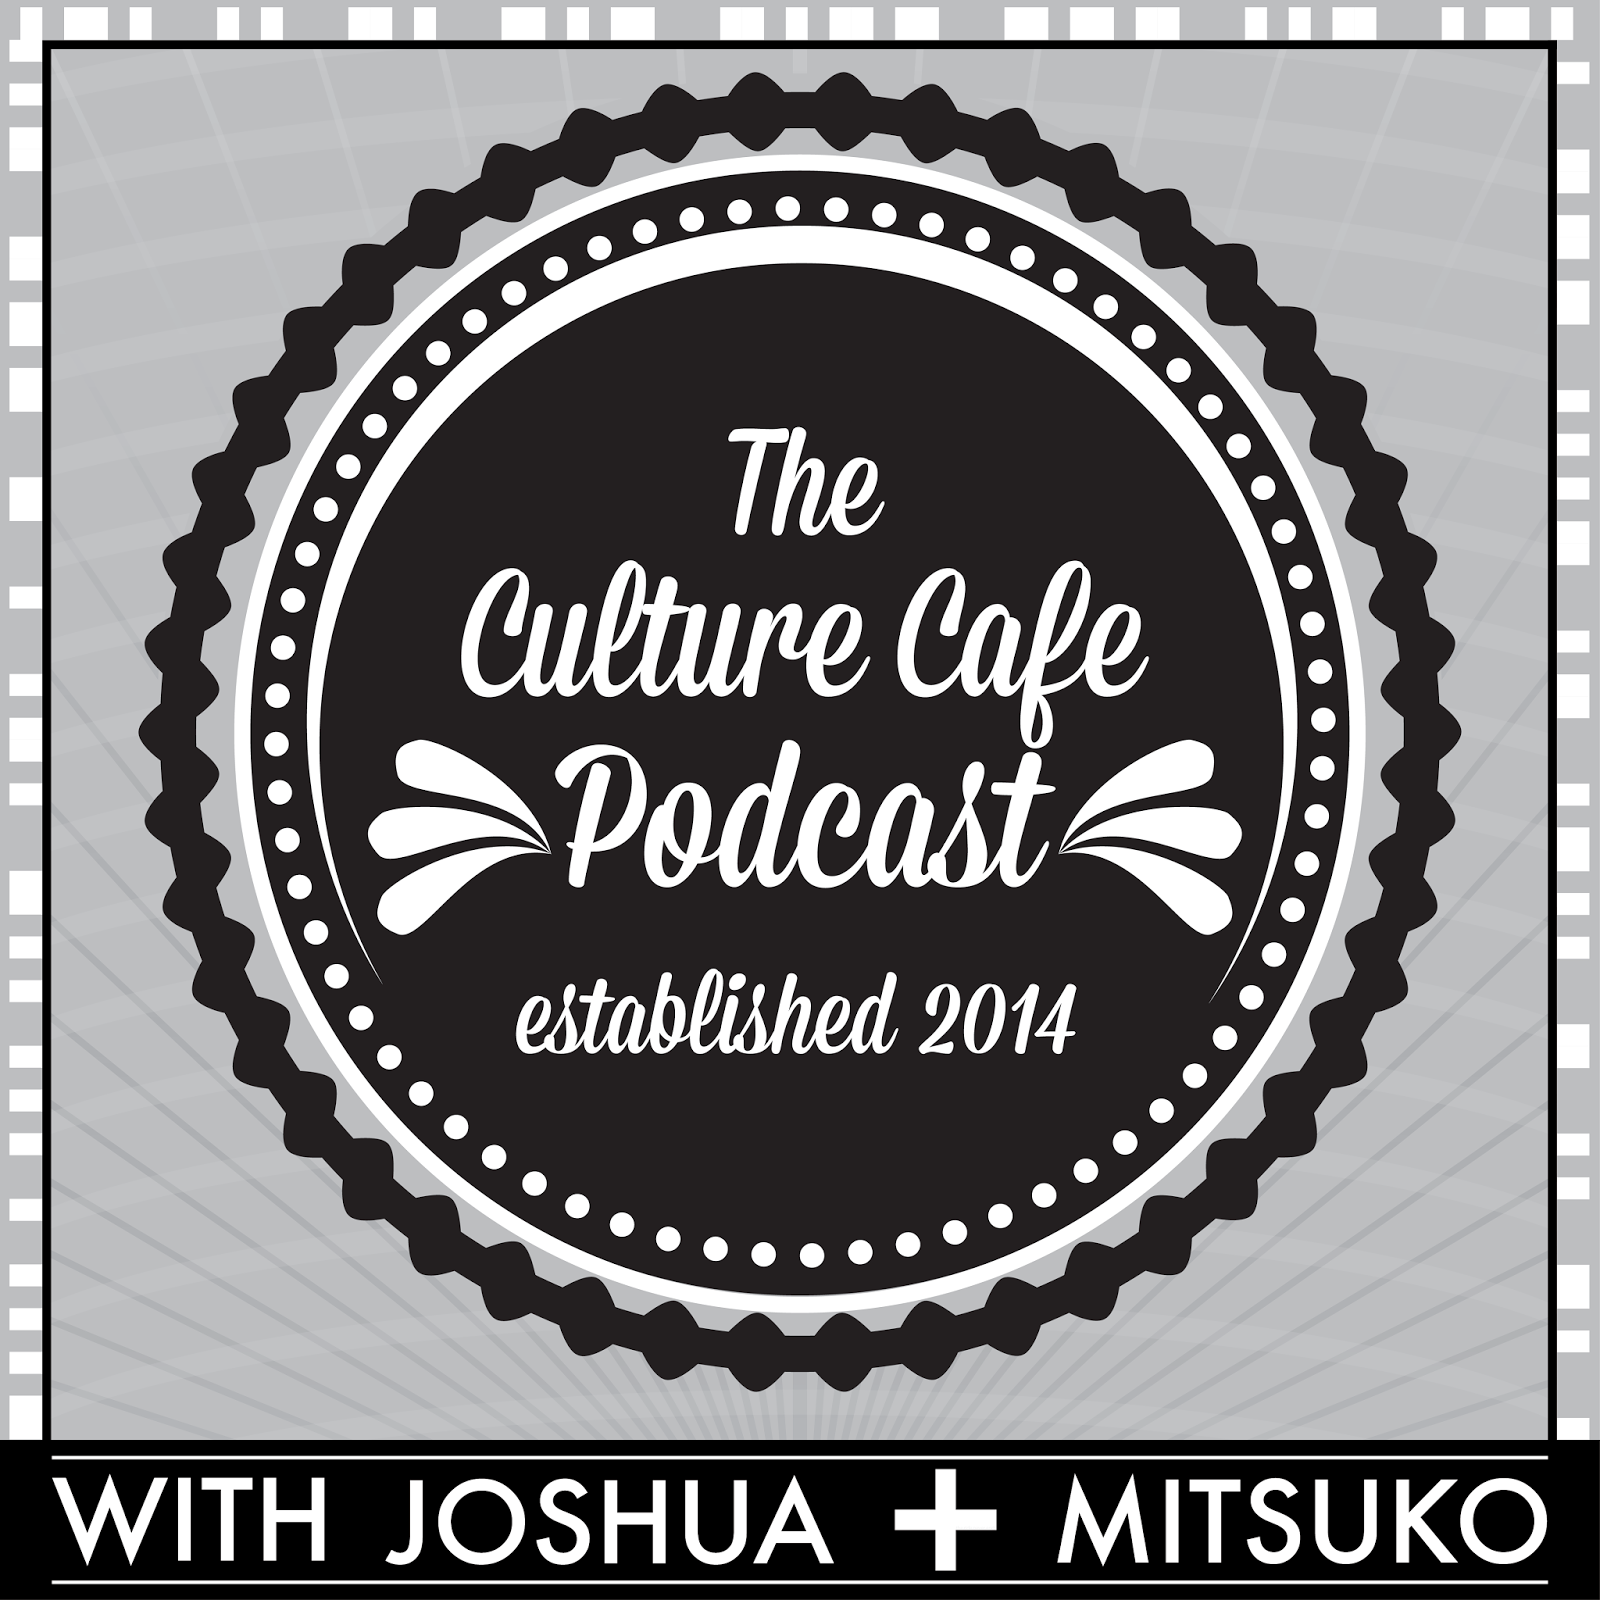 https://itunes.apple.com/us/podcast/the-culture-cafe-podcast/id909164679?mt=2